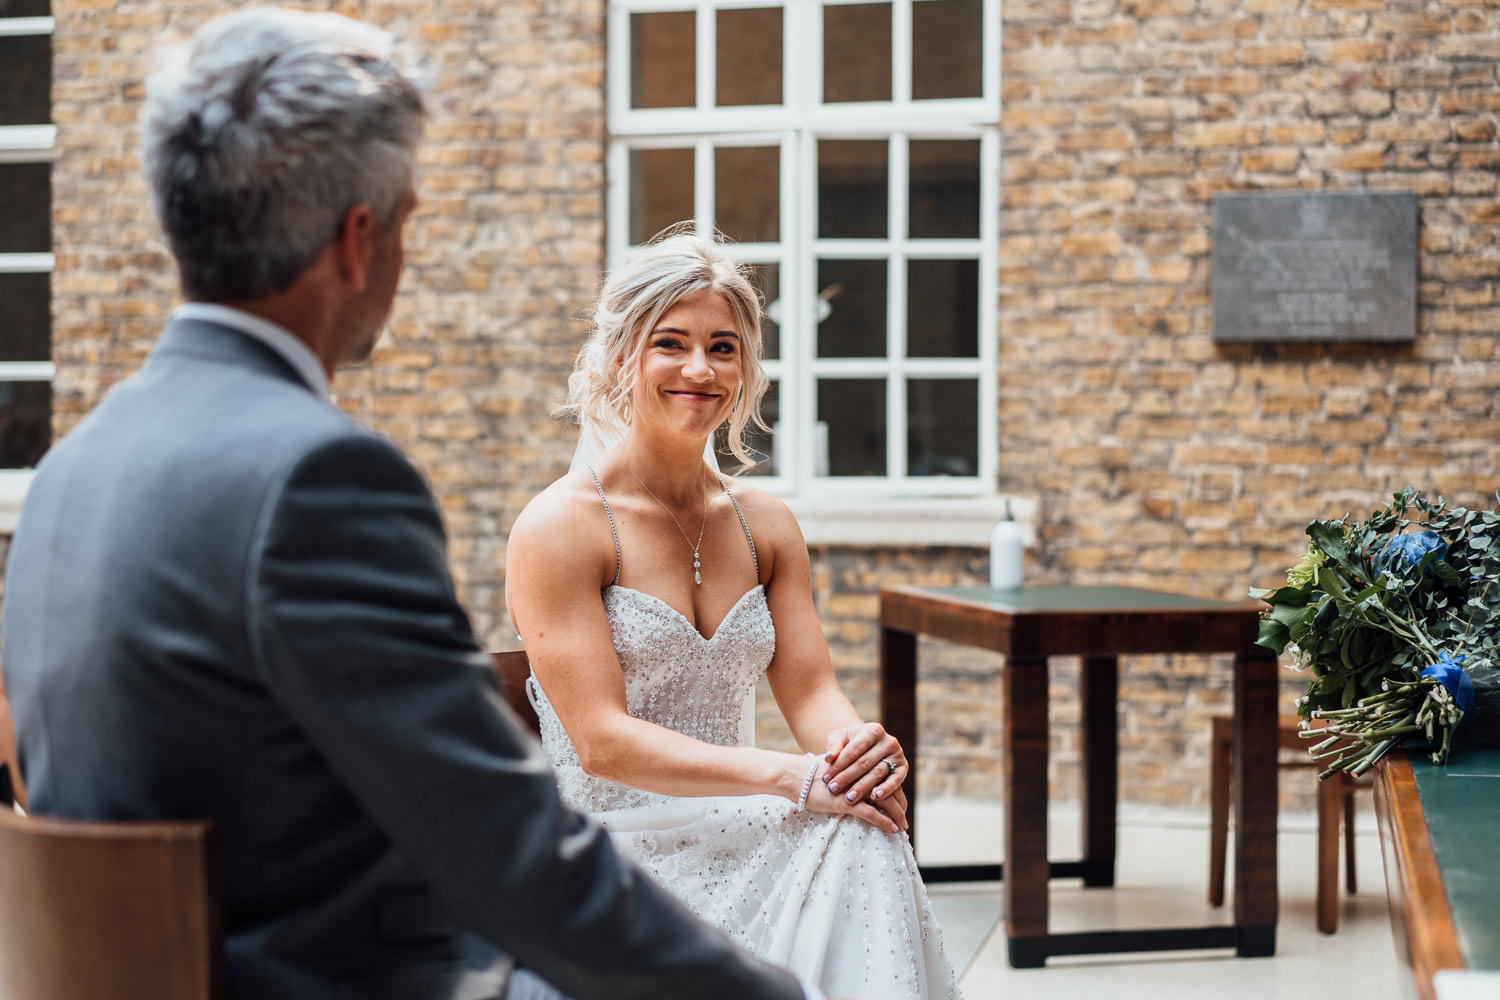 hackney town hall covid wedding ceremony by london wedding photographer the shannons photography